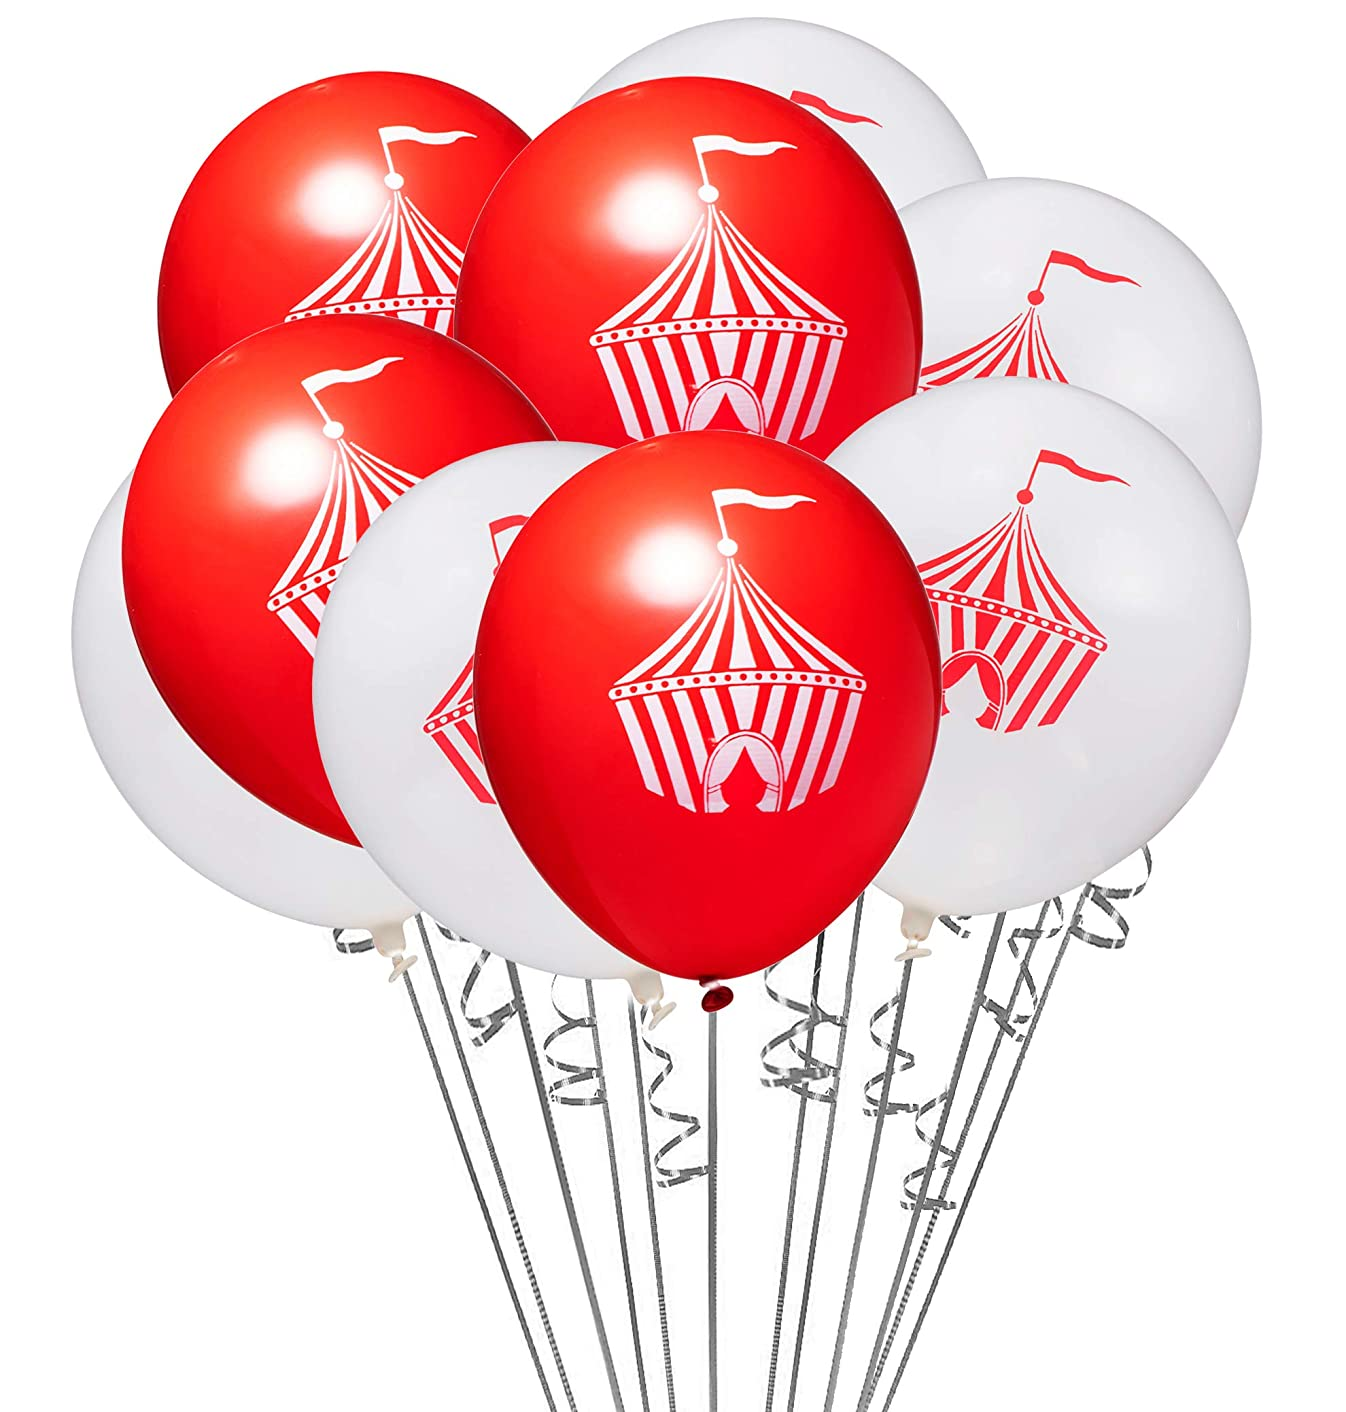 20 Pack Red  White Circus Tent 12 Inch Latex Carnival Party Balloons with 32